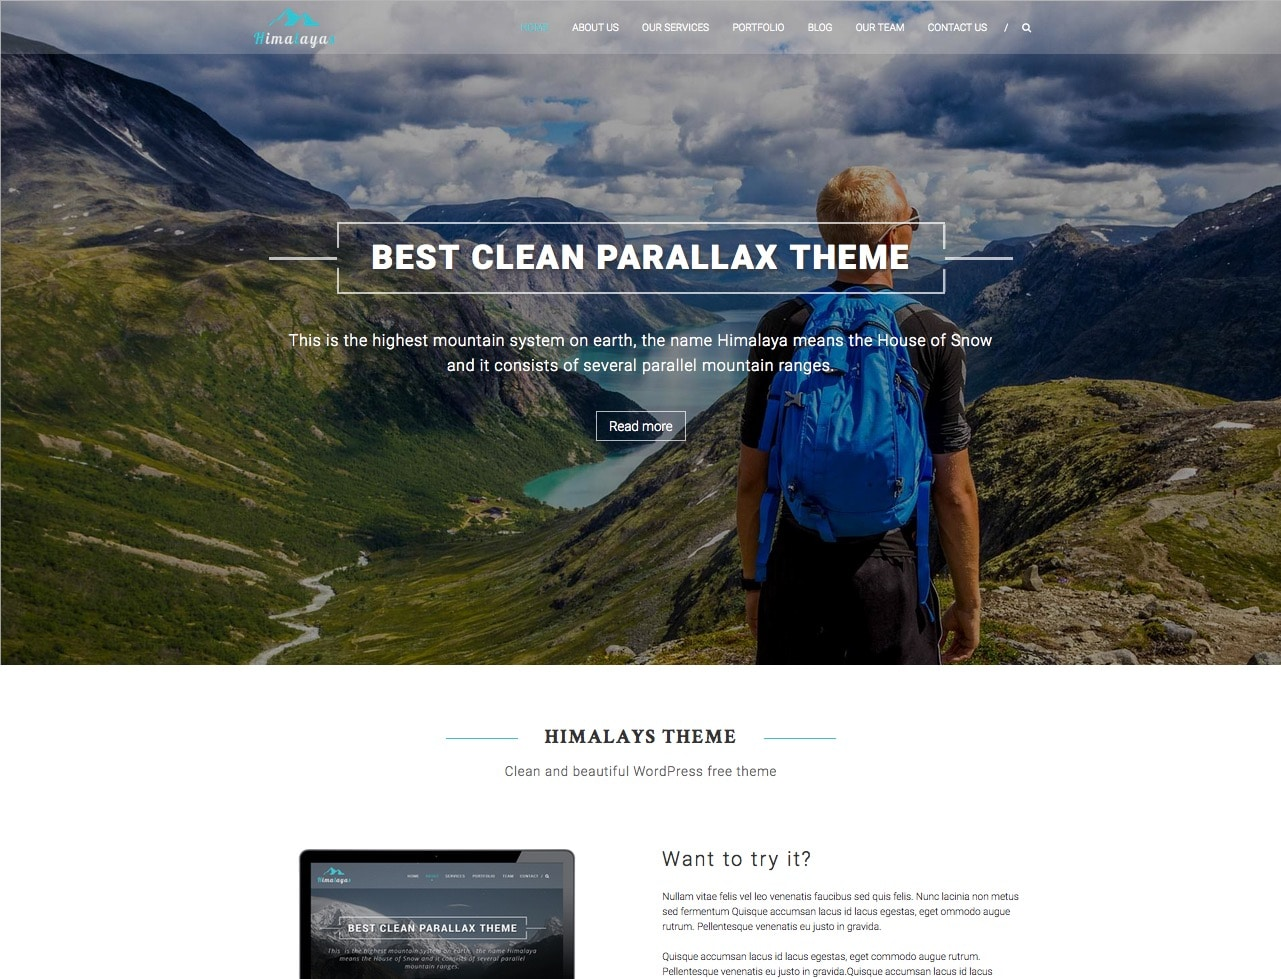 15+ Best Free One Page Parallax Responsive WordPress Themes to Build Awesome Single Page Sites for Portfolio, Business, Agency, Designers, Product Showcase and Other Many Purposes – 2019